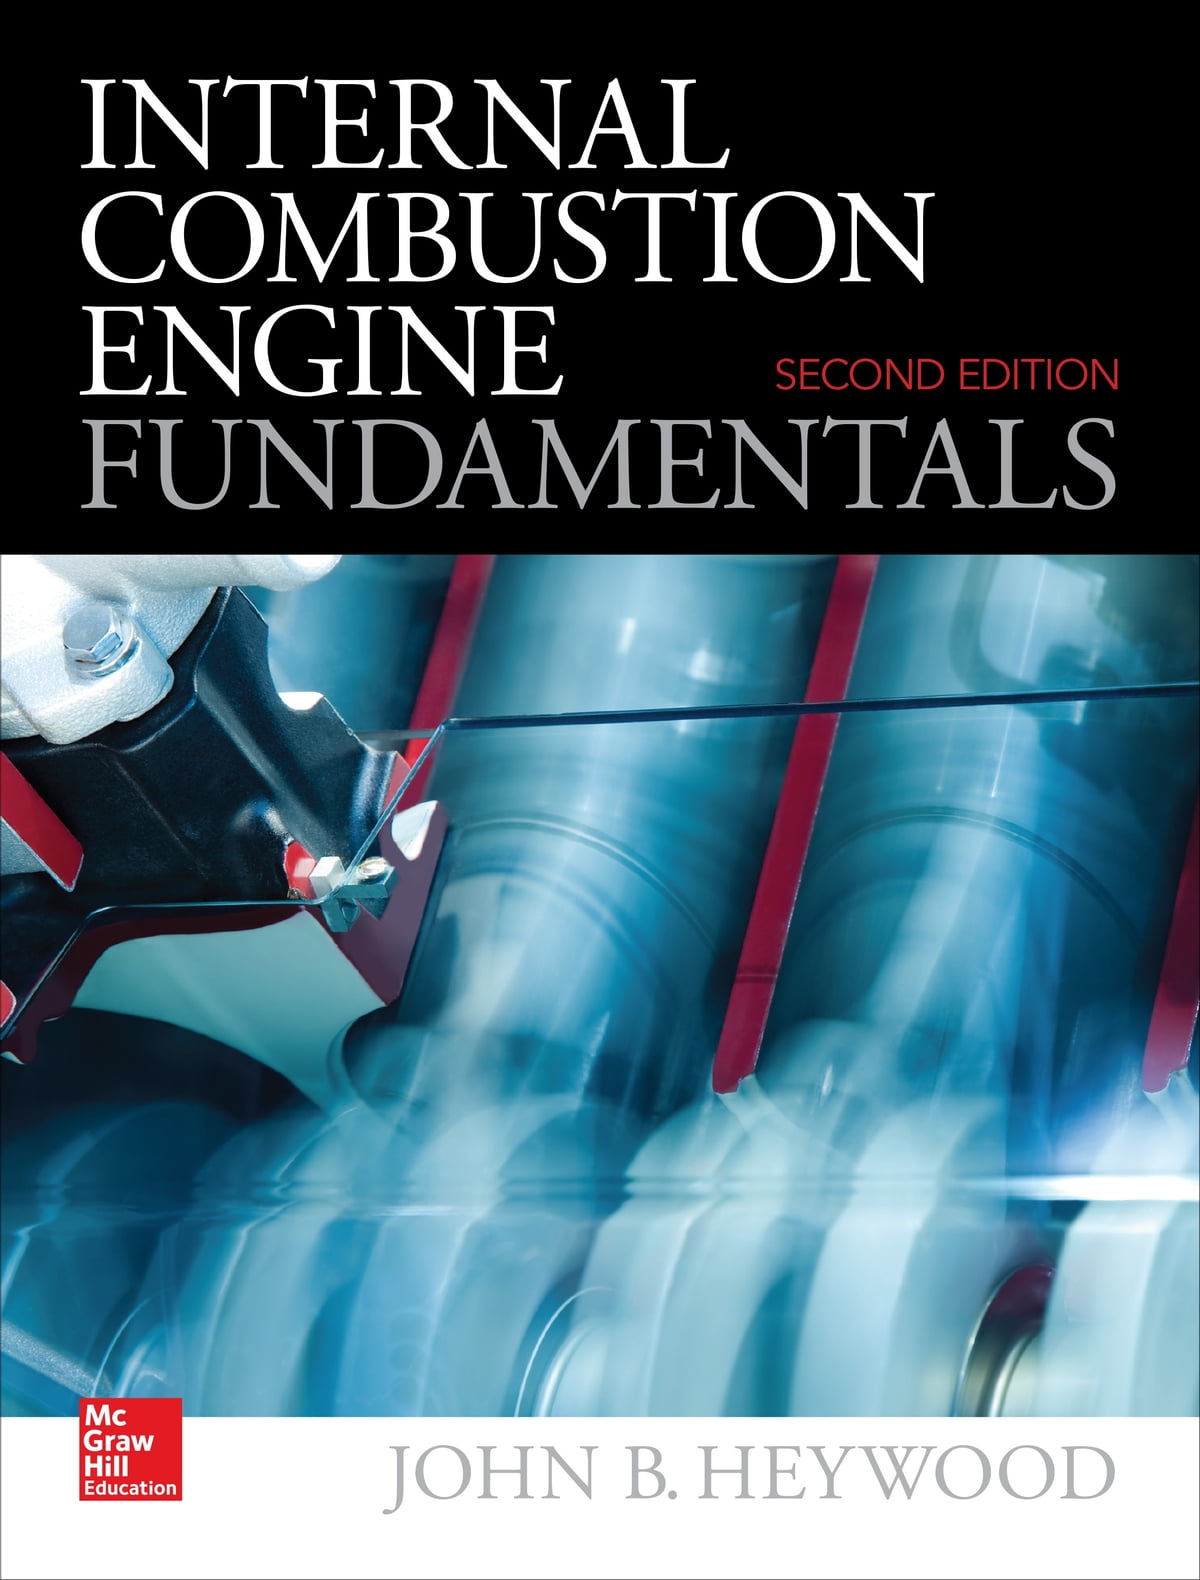 Internal combustion engine fundamentals 2e ebook by john heywood internal combustion engine fundamentals 2e ebook by john heywood 9781260116113 rakuten kobo fandeluxe Gallery